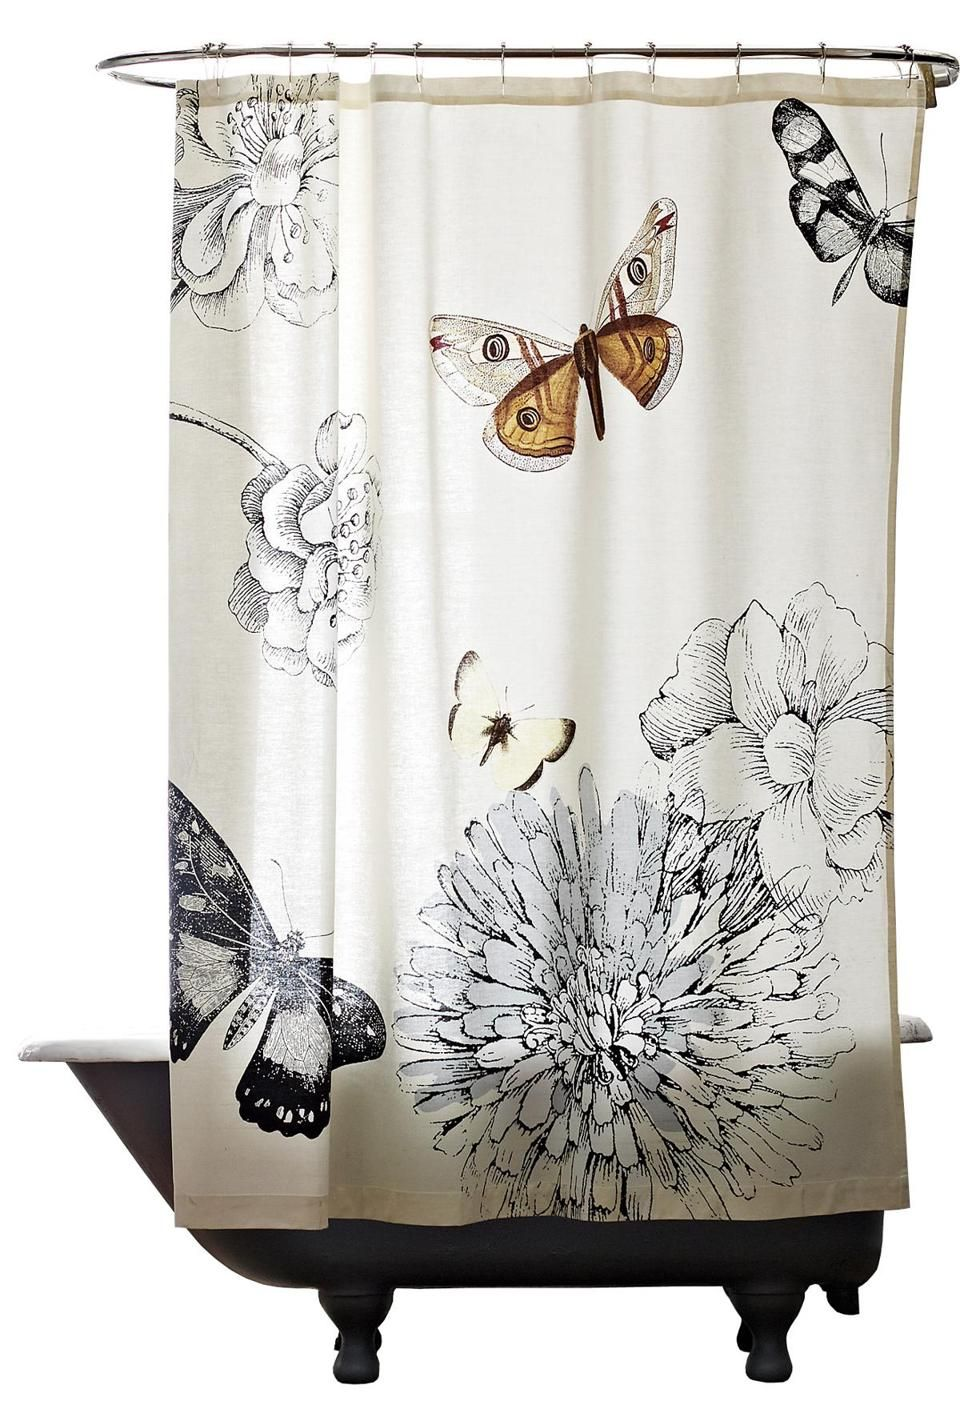 BUTTERFLY SHOWER CURTAIN 49 At West Elm 160 Brookline Avenue Boston 617 450 9500 And Wayside Commons 6 Road Burlington 781 221 5626